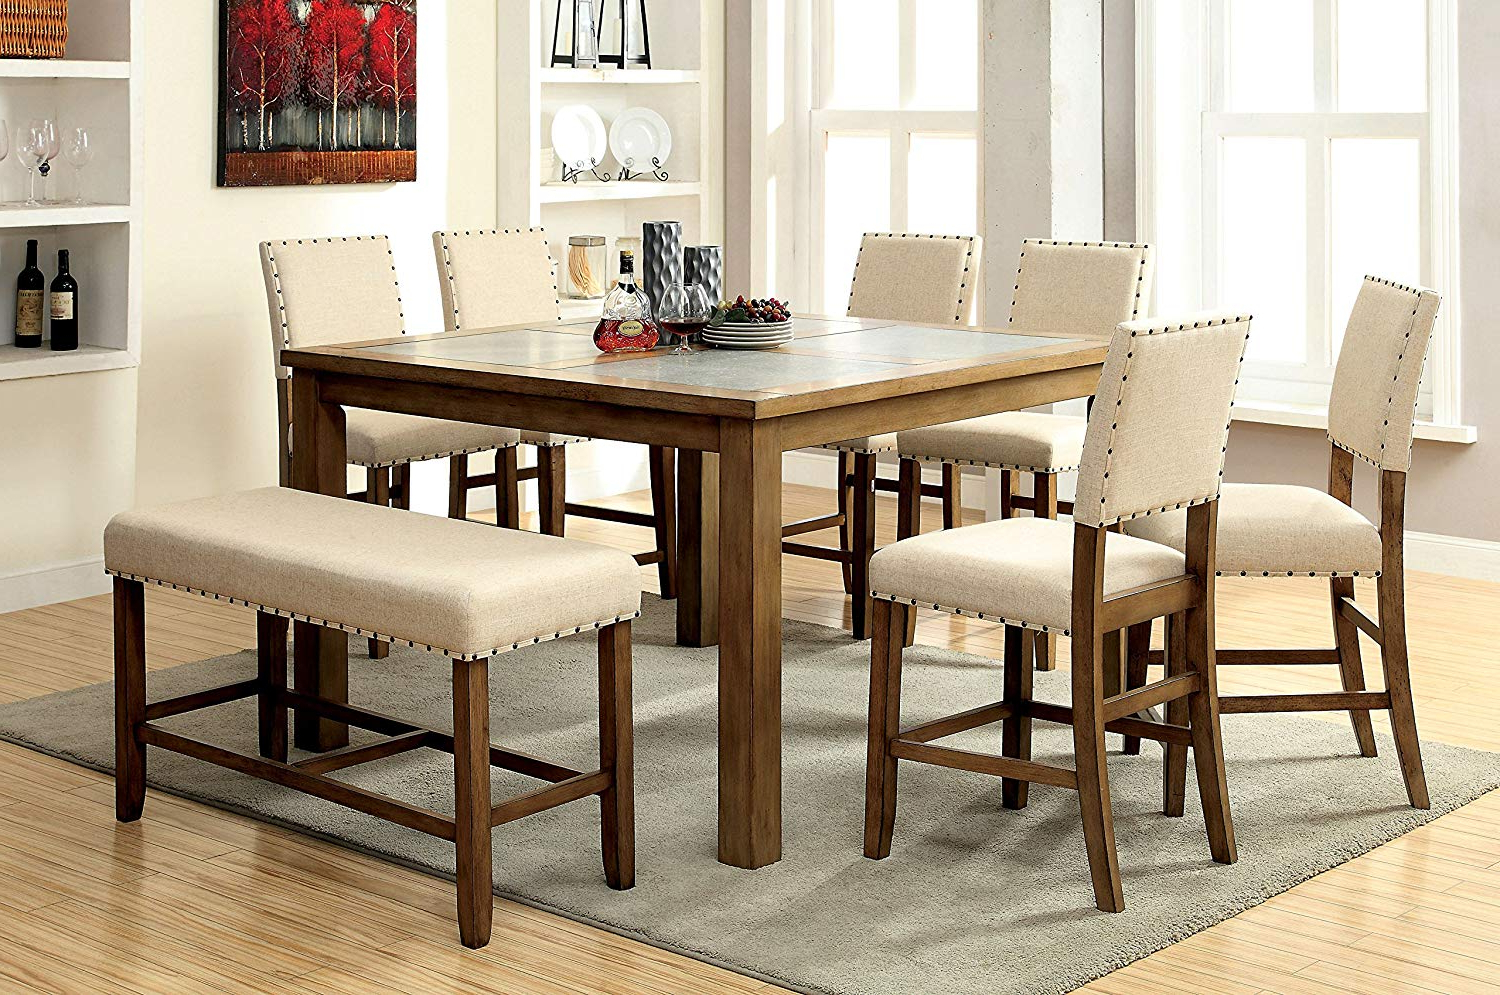 Widely Used Transitional Driftwood Casual Dining Tables For Furniture Of America Lucena 8 Piece Transitional Pub Dining Set (View 4 of 30)